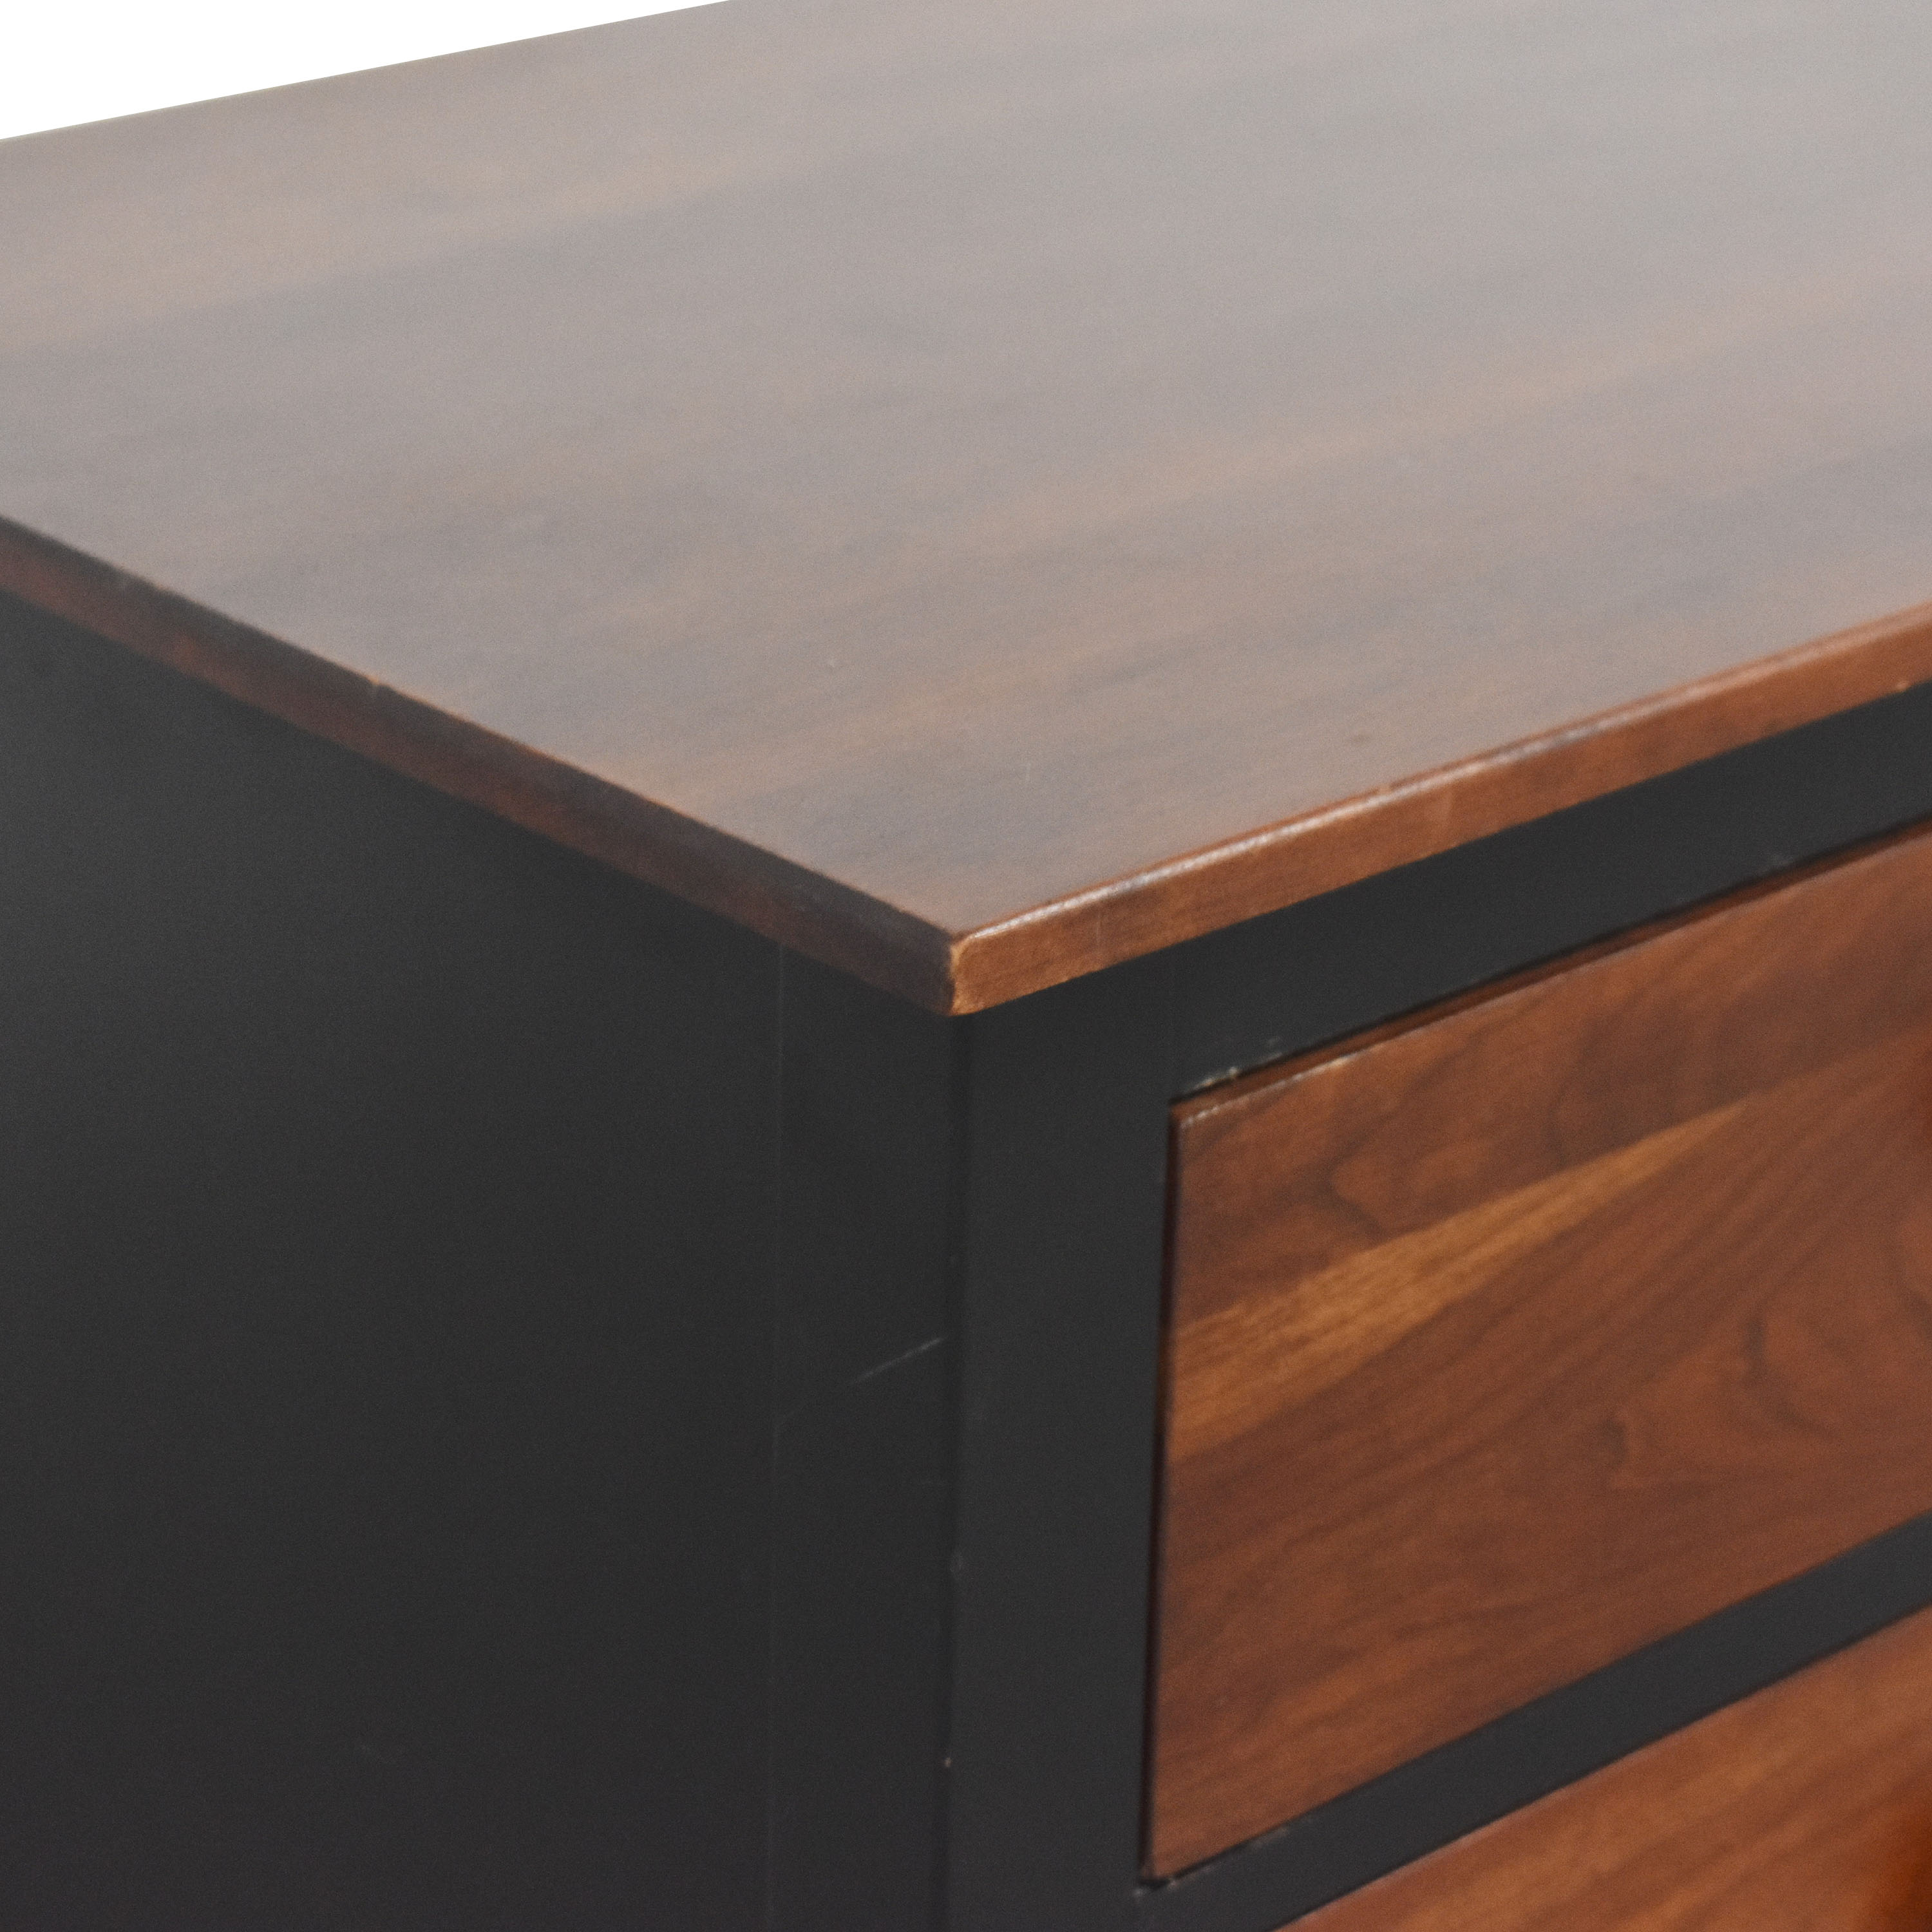 Ethan Allen American Impressions Nightstands / End Tables